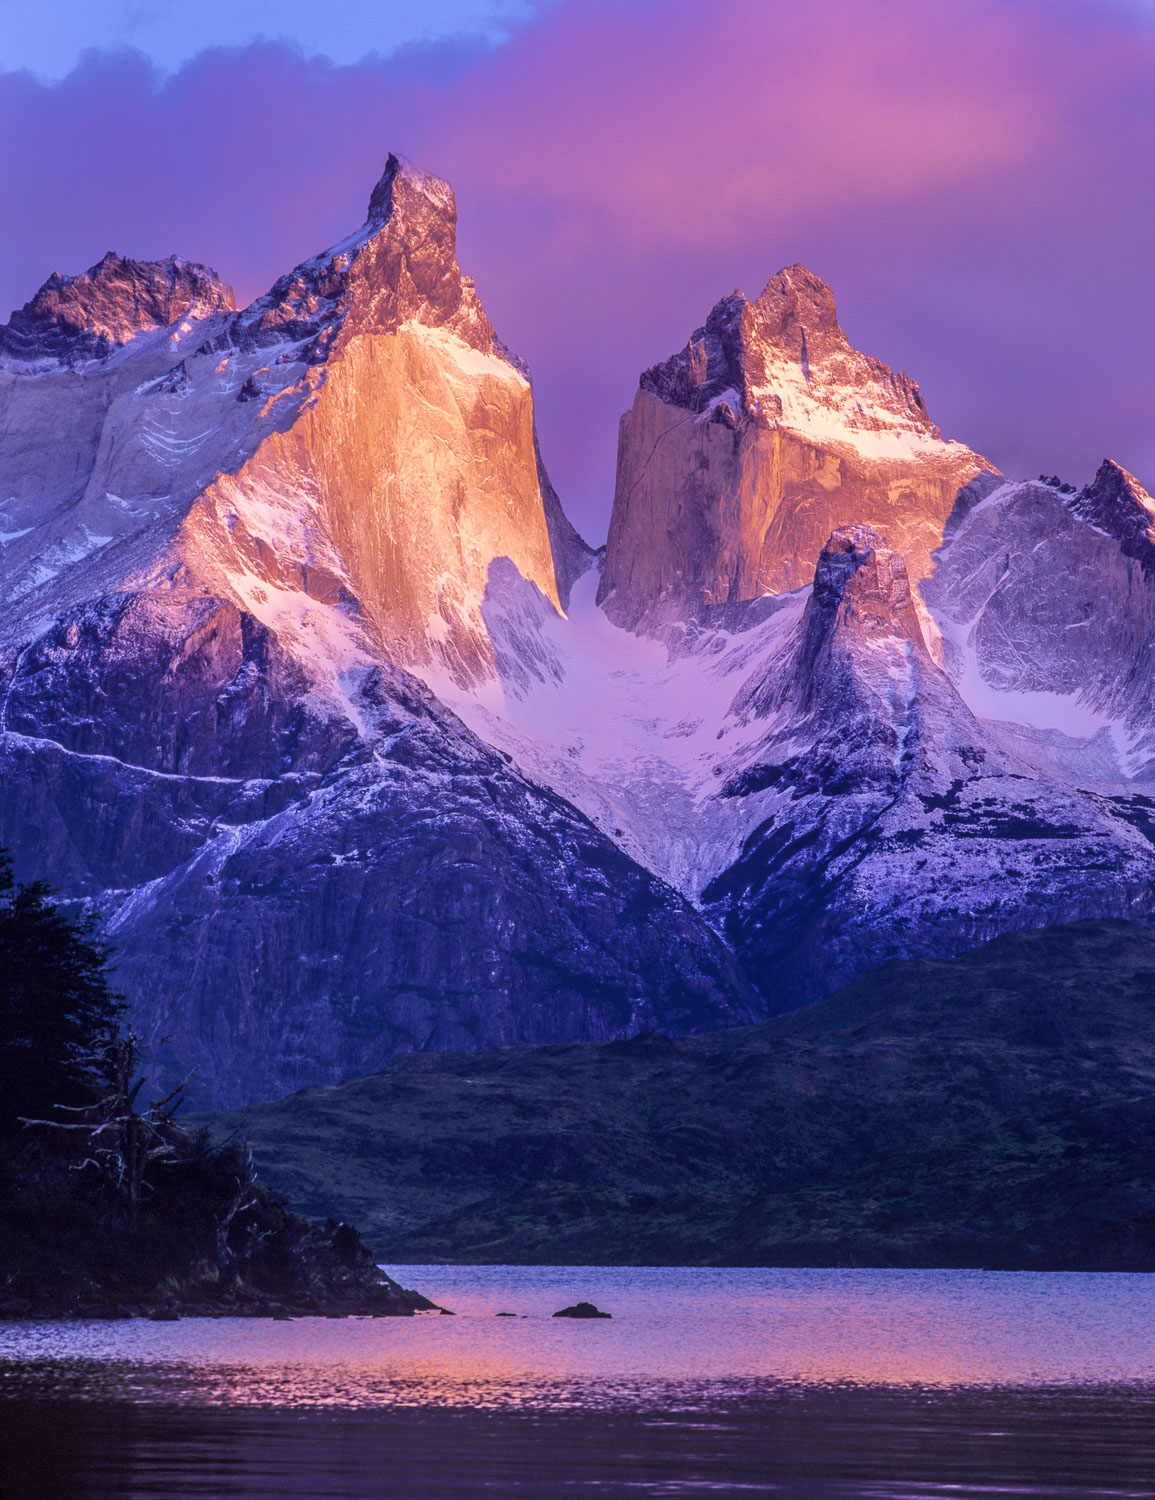 """Cuernos Glow"", A Reflection of the Cuernos at Torres Del Paine"